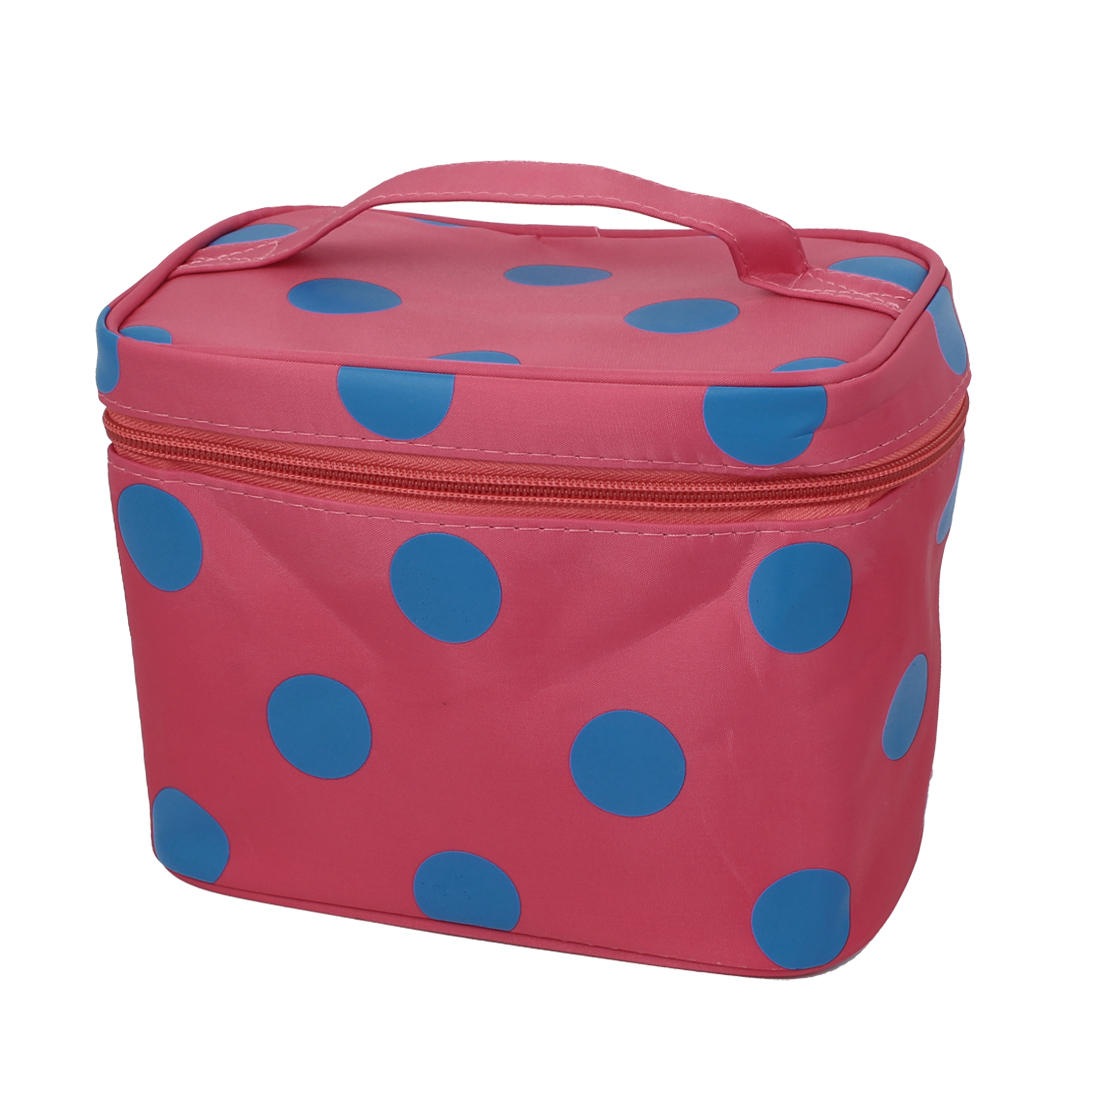 Dots Pattern Zippered Cosmetic Makeup Storage Case Organizer Bag Watermelon Red